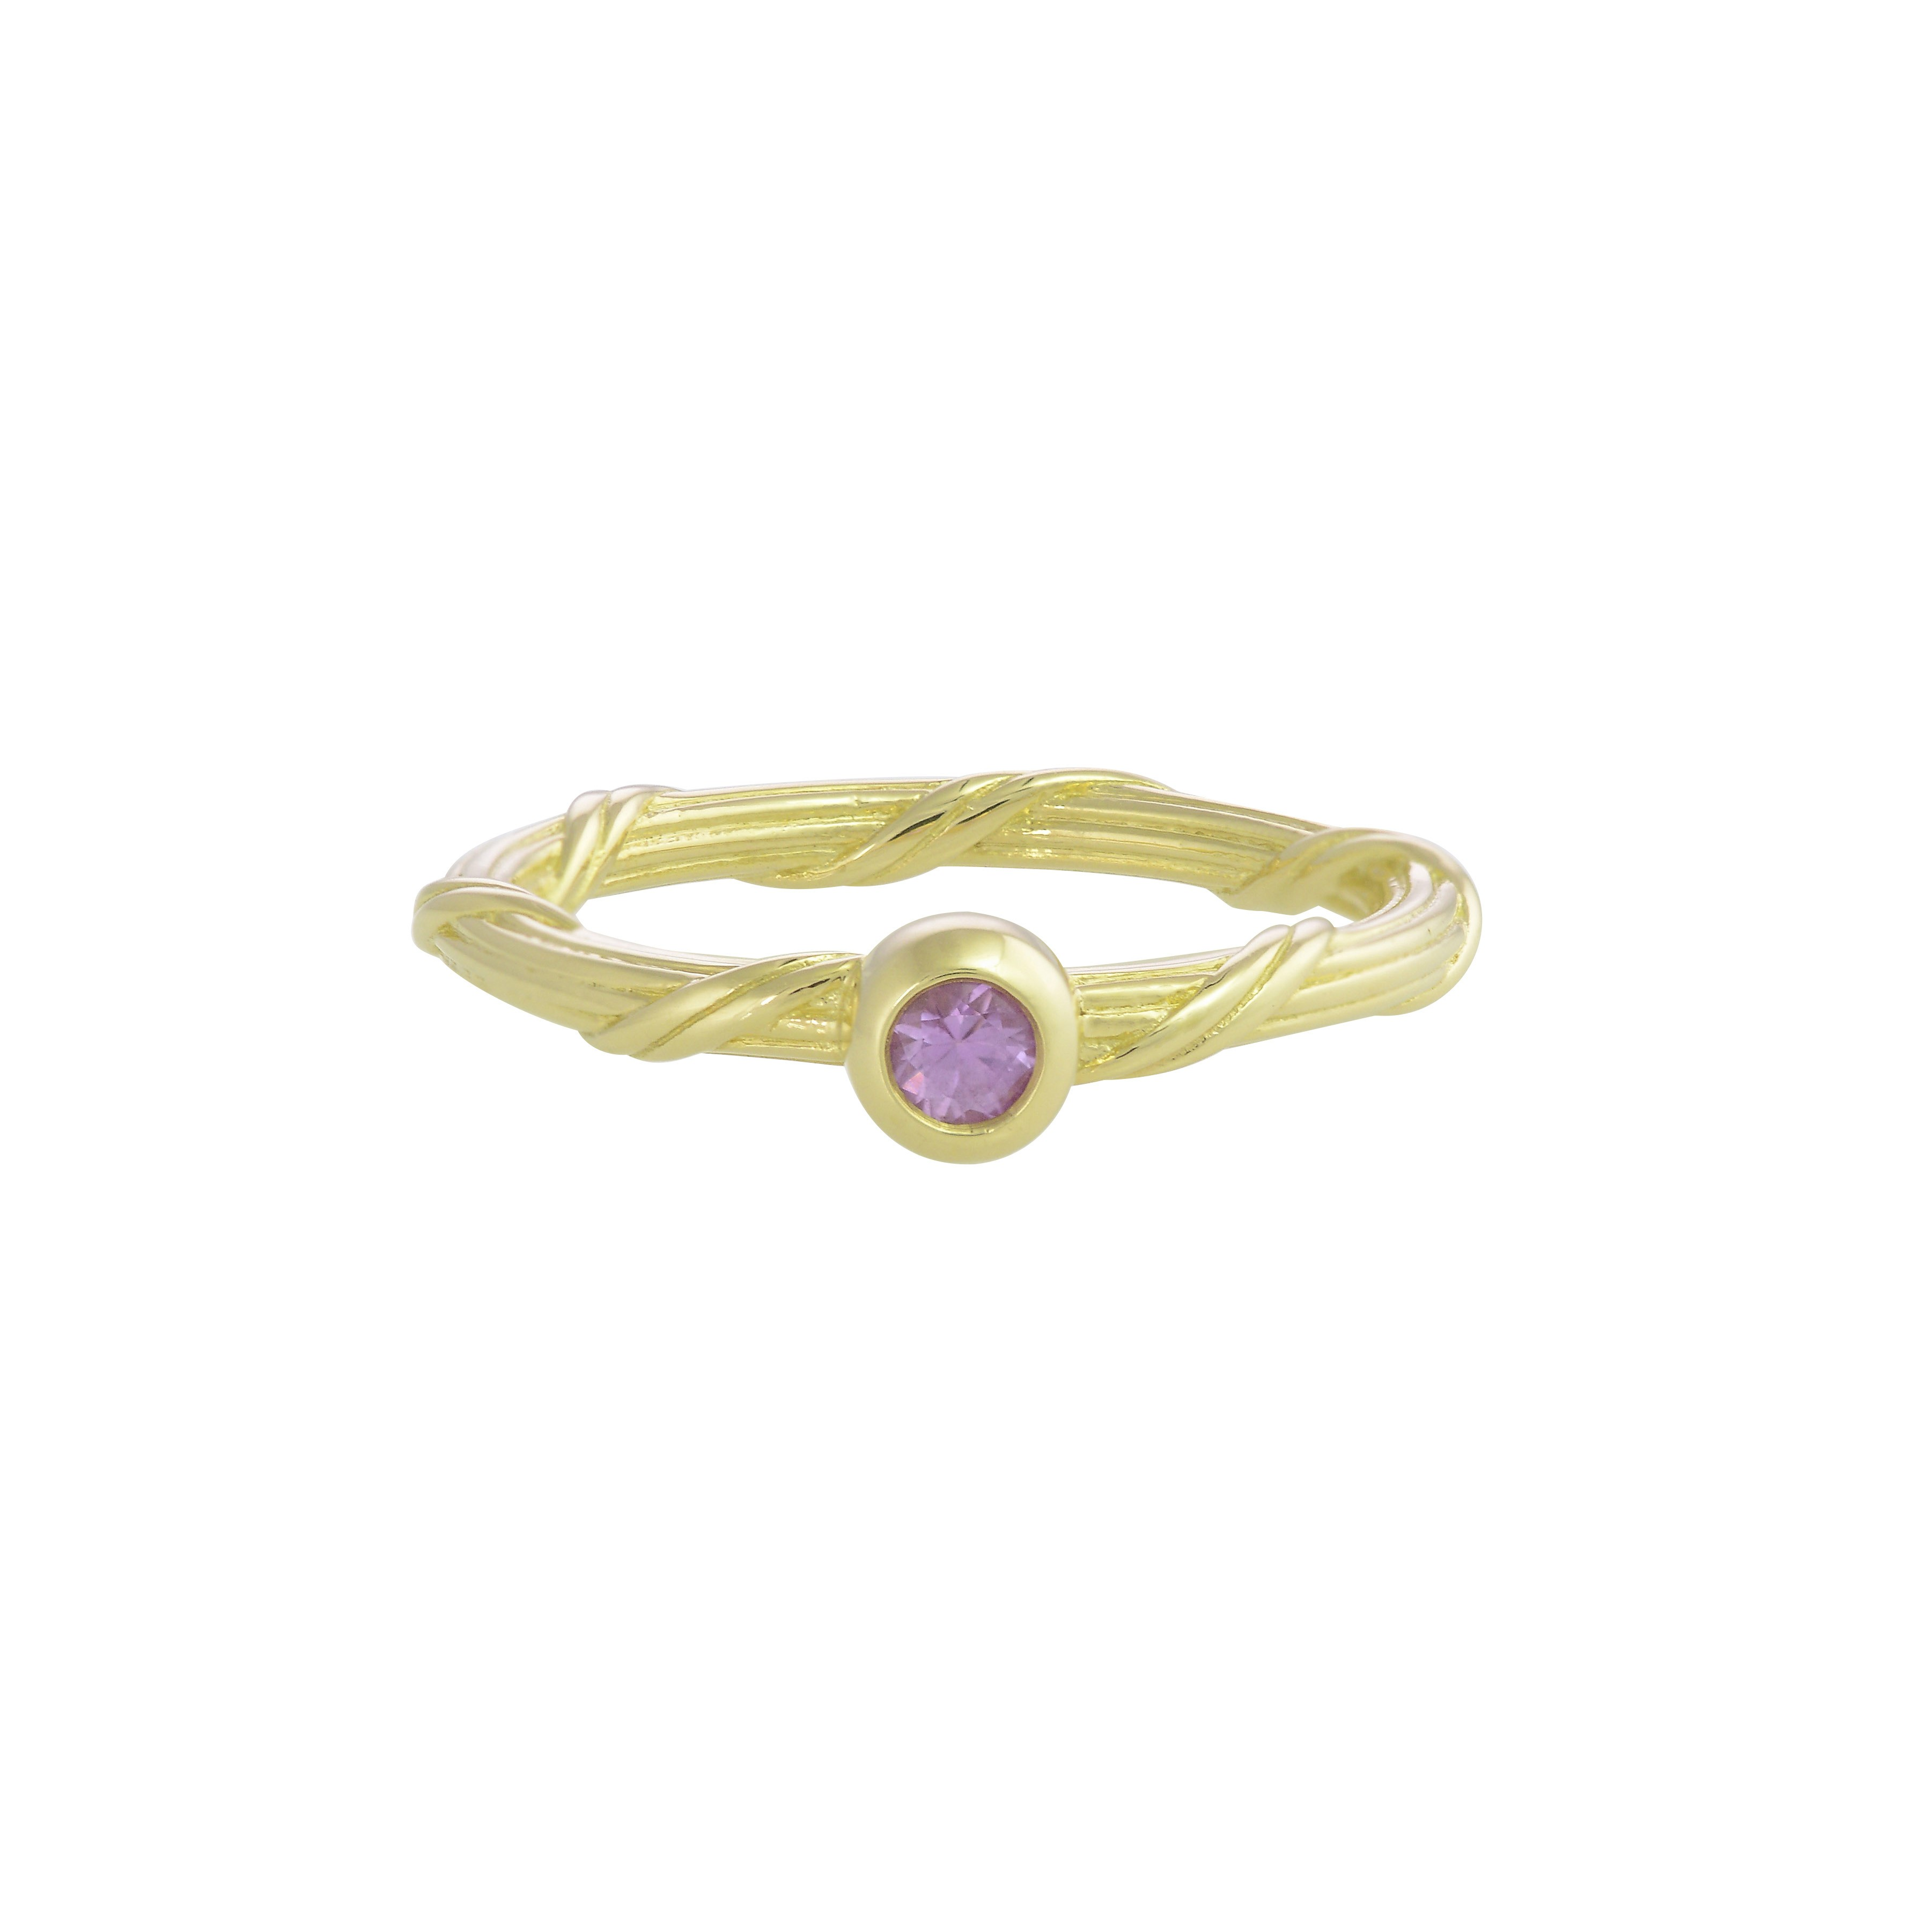 Heritage Pink Sapphire Ring in 18K gold